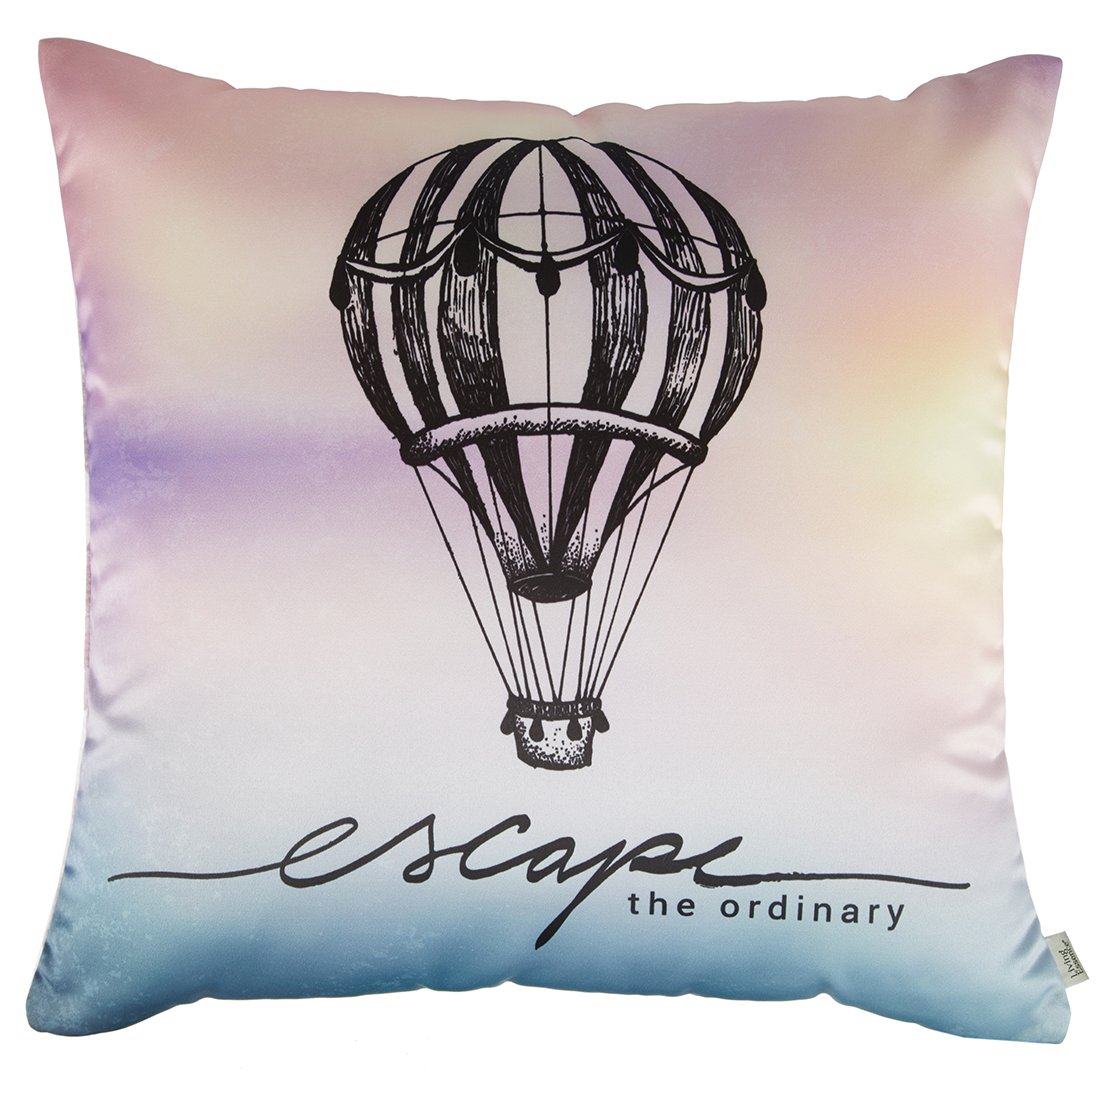 Digital Cushion Cover Parachute Cushion Covers in Poly Satin Colour by Living Essence